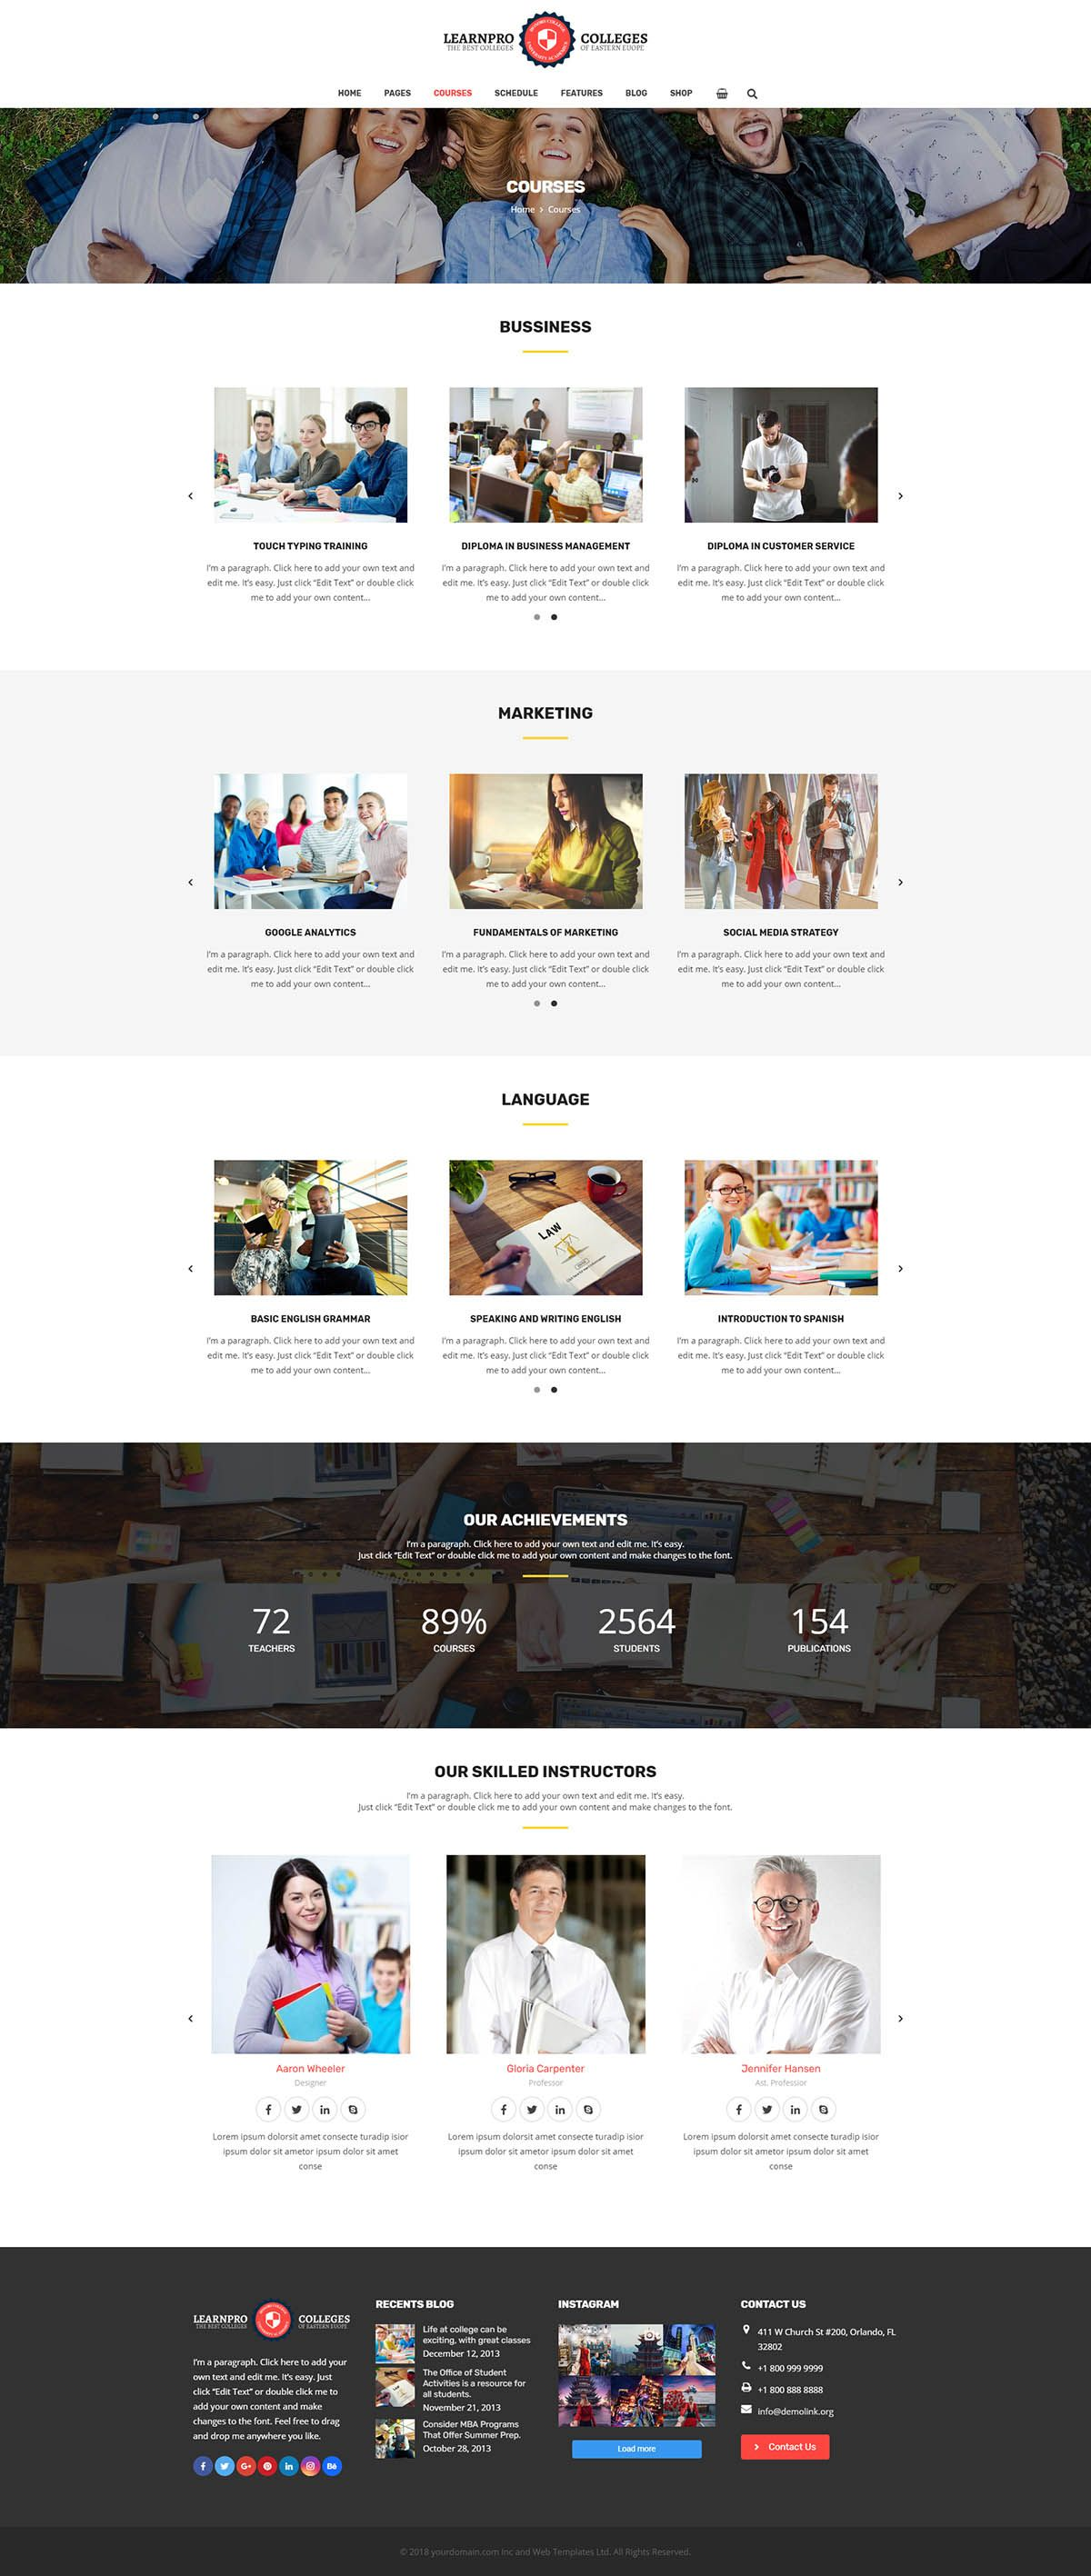 Learnpro - Education WordPress Theme Screenshot 3